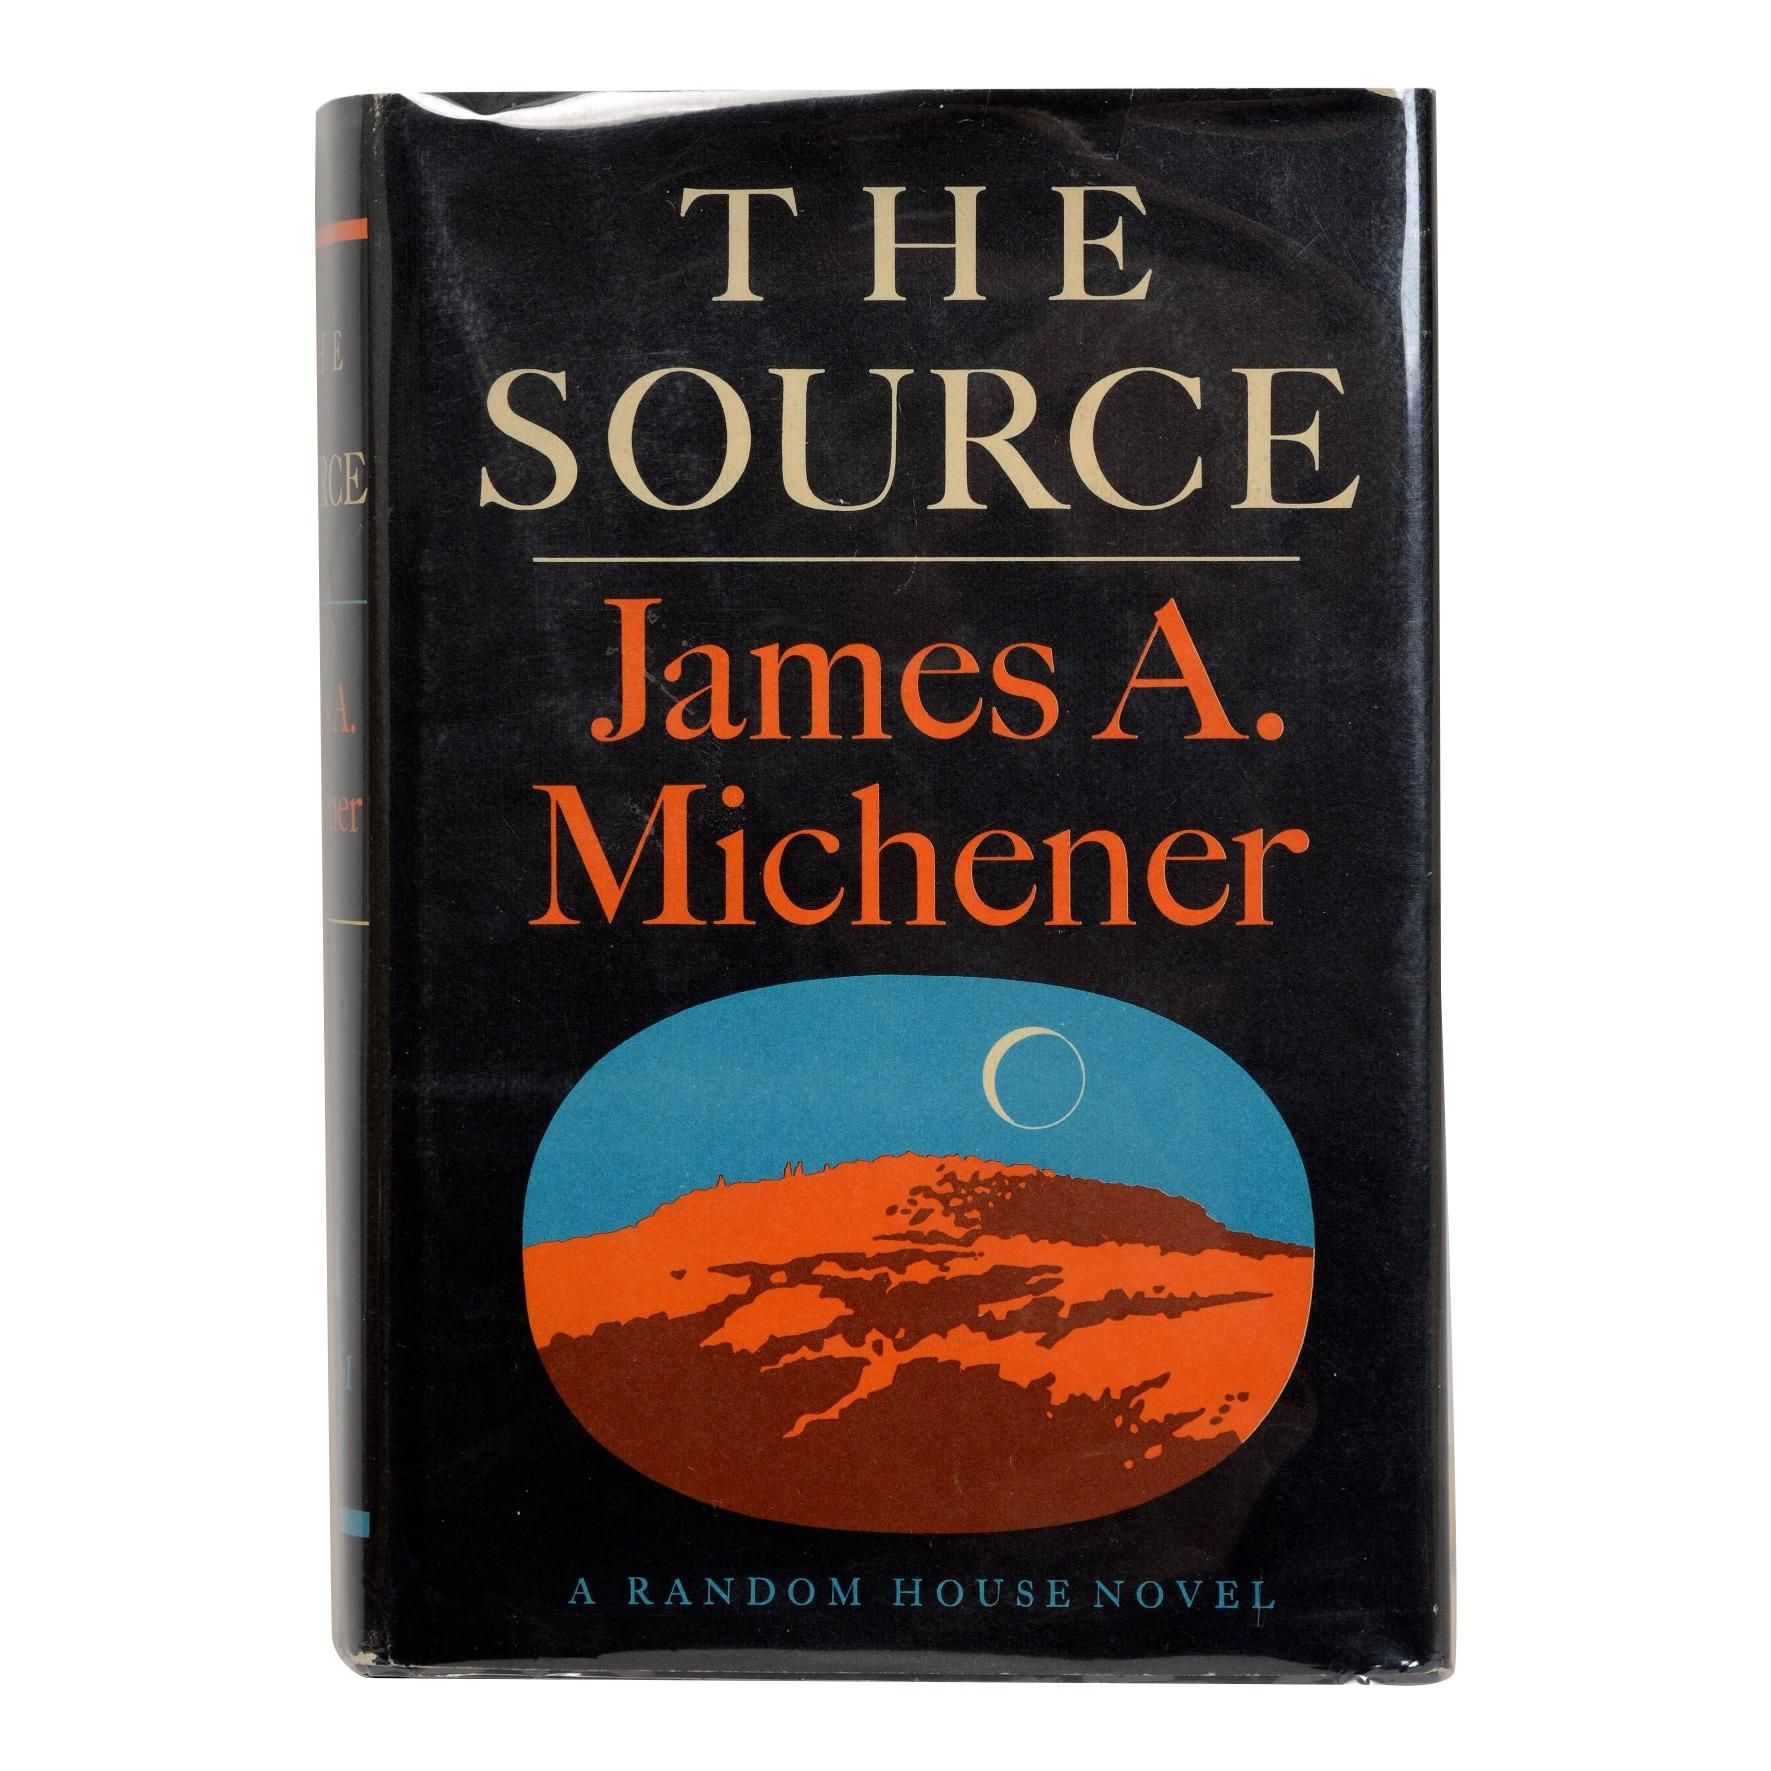 The Source by James A. Michener, First Edition 1st Printing